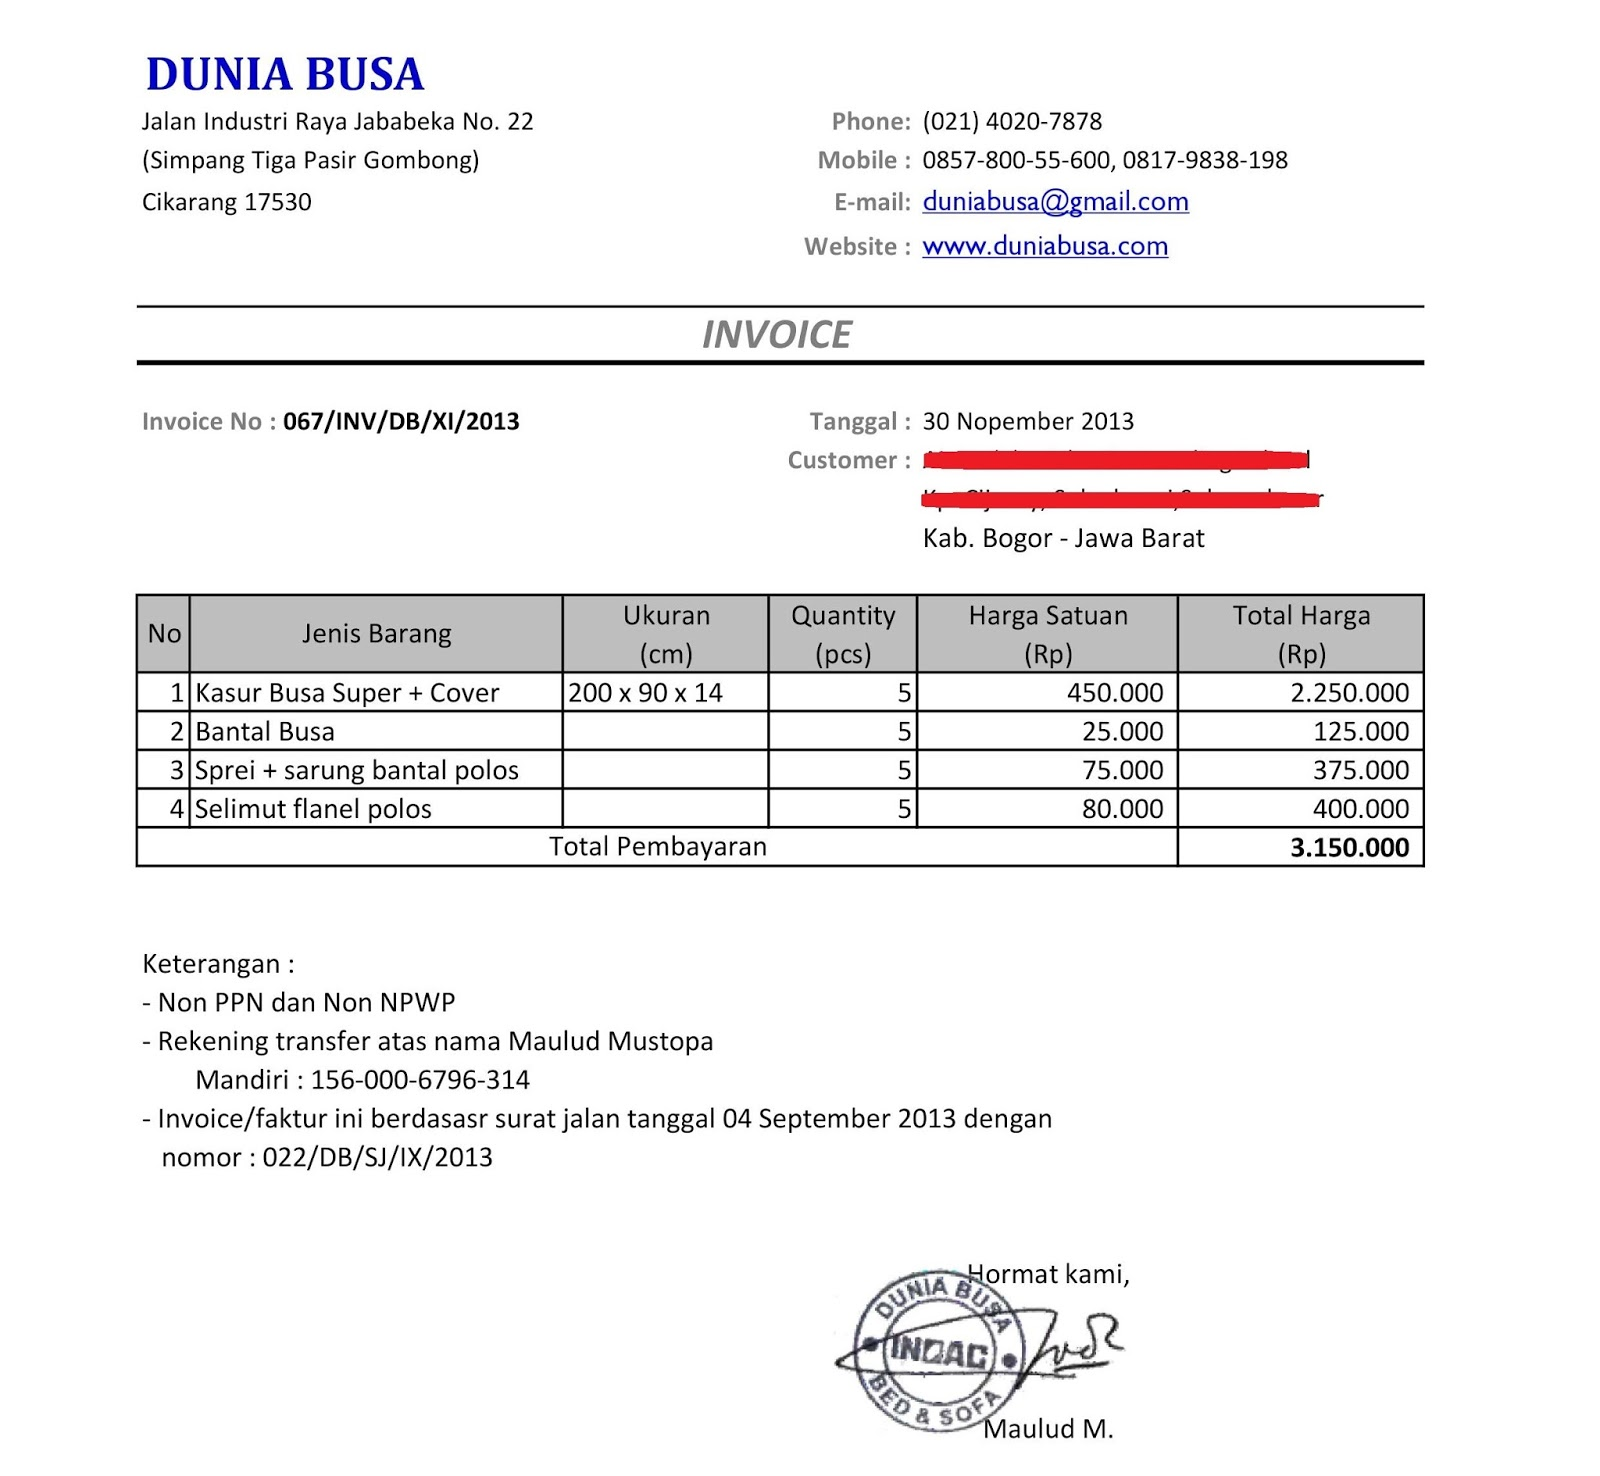 Usdgus  Unique Free Invoice Online  Create Invoice Online  Invoice Template  With Marvelous Contoh Format Invoice Atau Surat Tagihan  Brankas Arsip  Free Invoice Online With Delightful Freelance Invoicing Software Also Canada Car Invoice Price In Addition How To Raise An Invoice And How To Make A Invoice Template In Word As Well As Invoice Finance Providers Additionally Invoice Template In Excel Free Download From Sklepco With Usdgus  Marvelous Free Invoice Online  Create Invoice Online  Invoice Template  With Delightful Contoh Format Invoice Atau Surat Tagihan  Brankas Arsip  Free Invoice Online And Unique Freelance Invoicing Software Also Canada Car Invoice Price In Addition How To Raise An Invoice From Sklepco